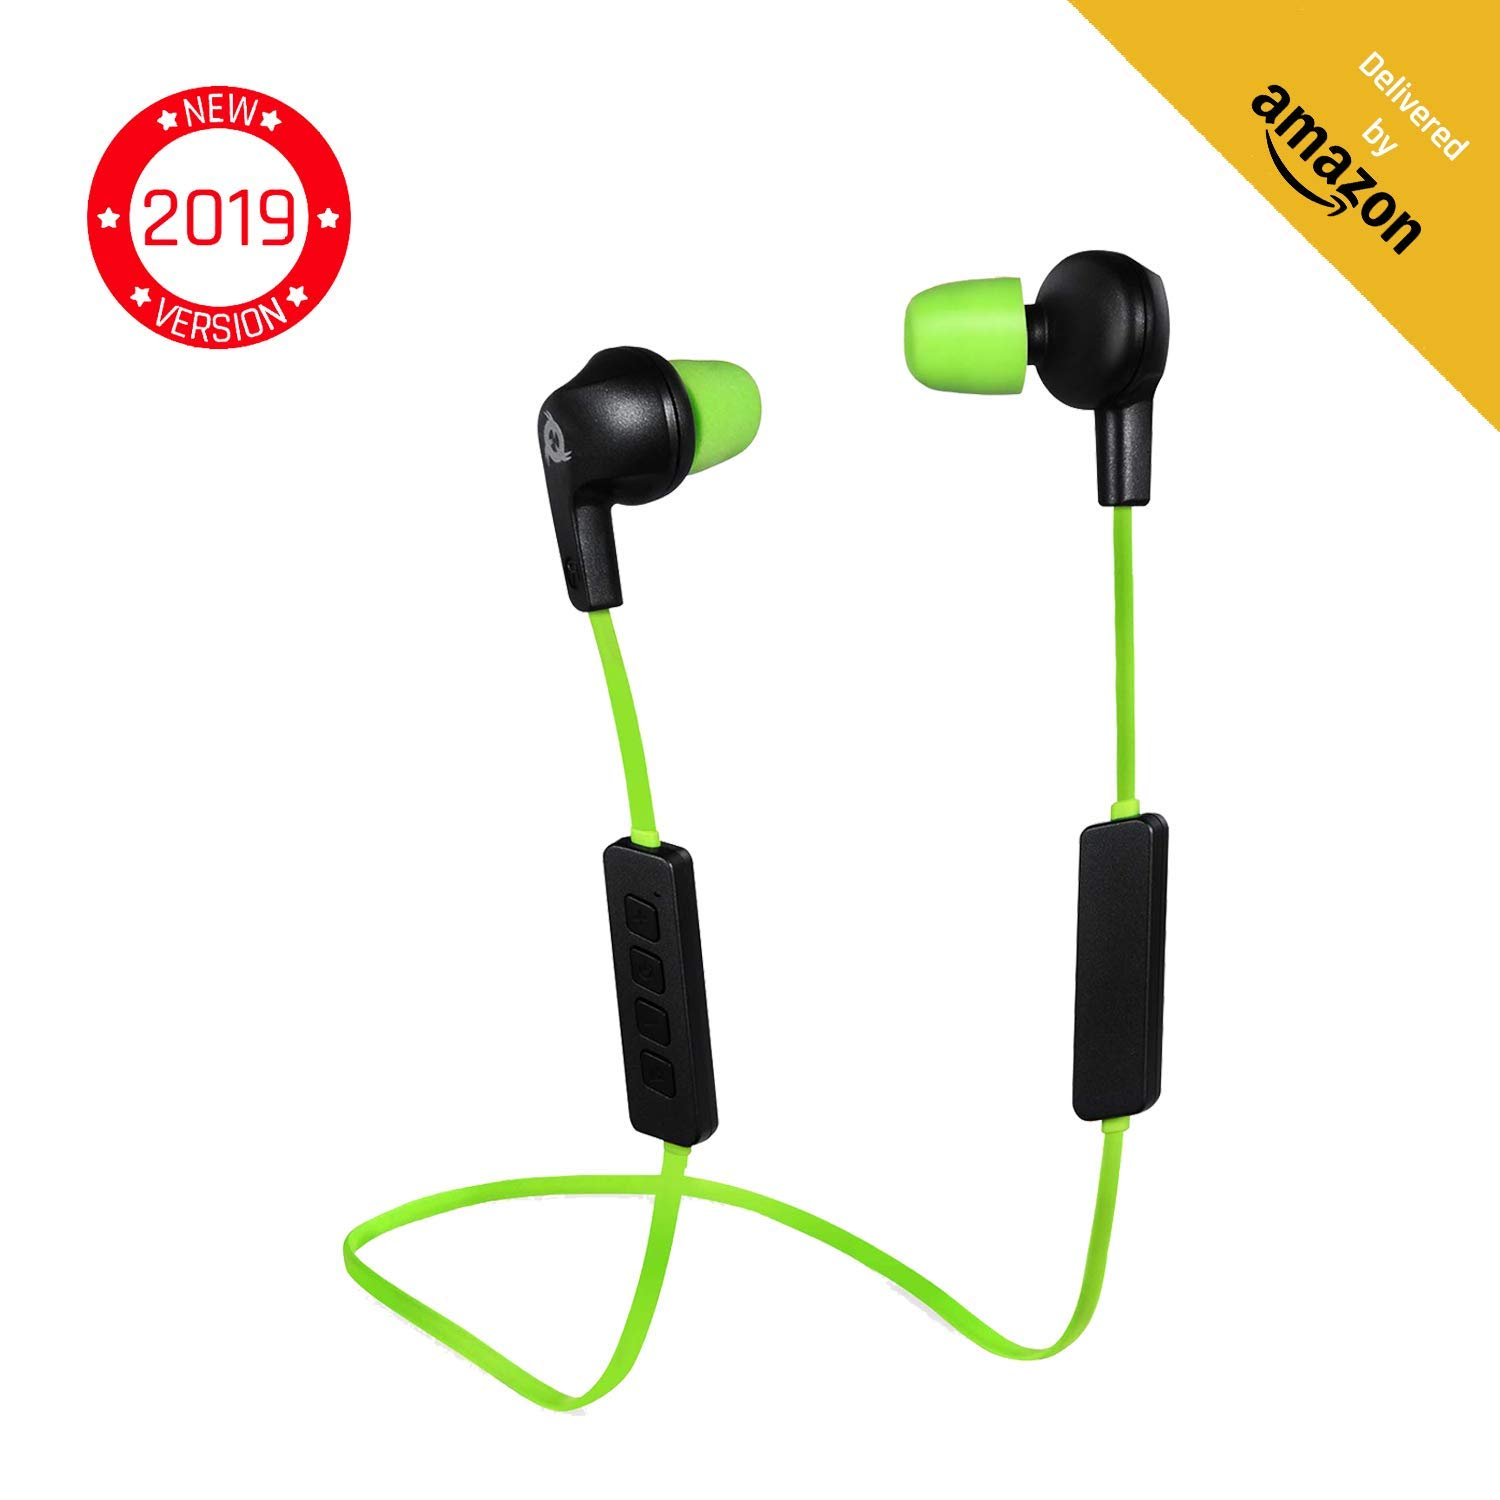 KLIM Pulse Bluetooth Wireless Earbuds Earphones with Microphone New 2019 Version Headphones Noise Reduction Running, Music, Phone Calls, Workout Magnetic Ear Buds Auriculares Audifonos